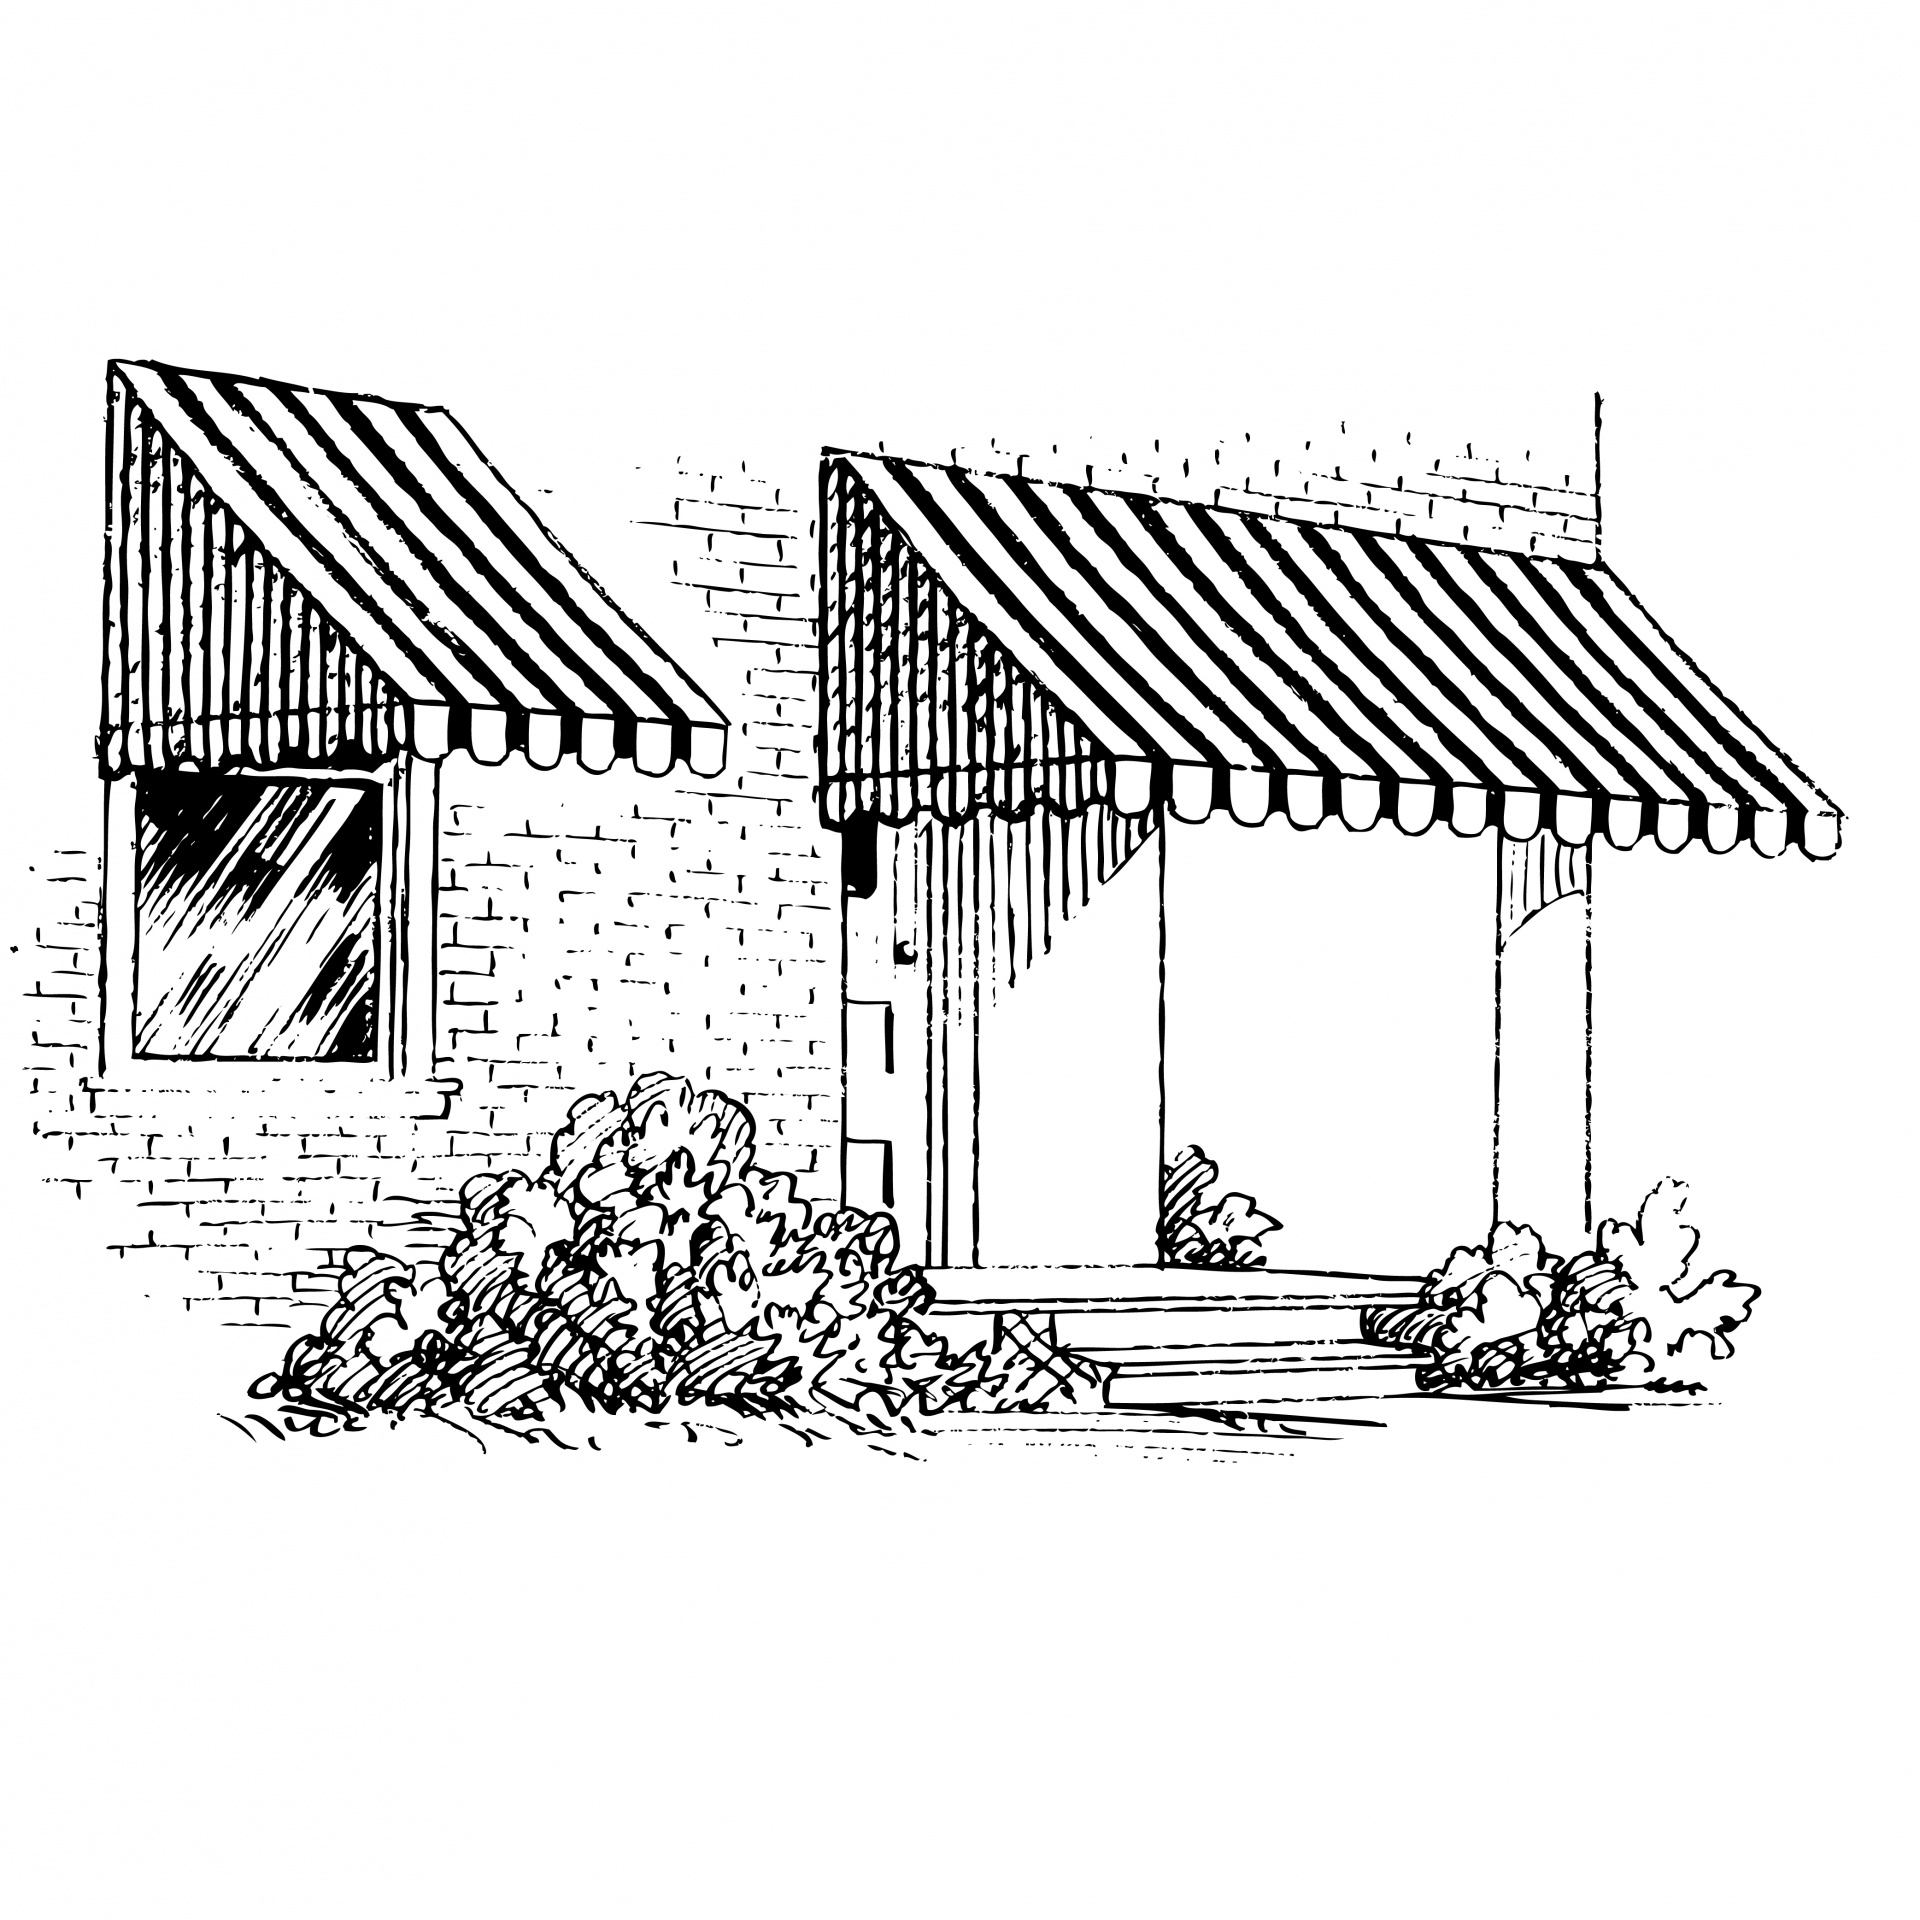 Awning Clipart Illustration Free Stock Photo.